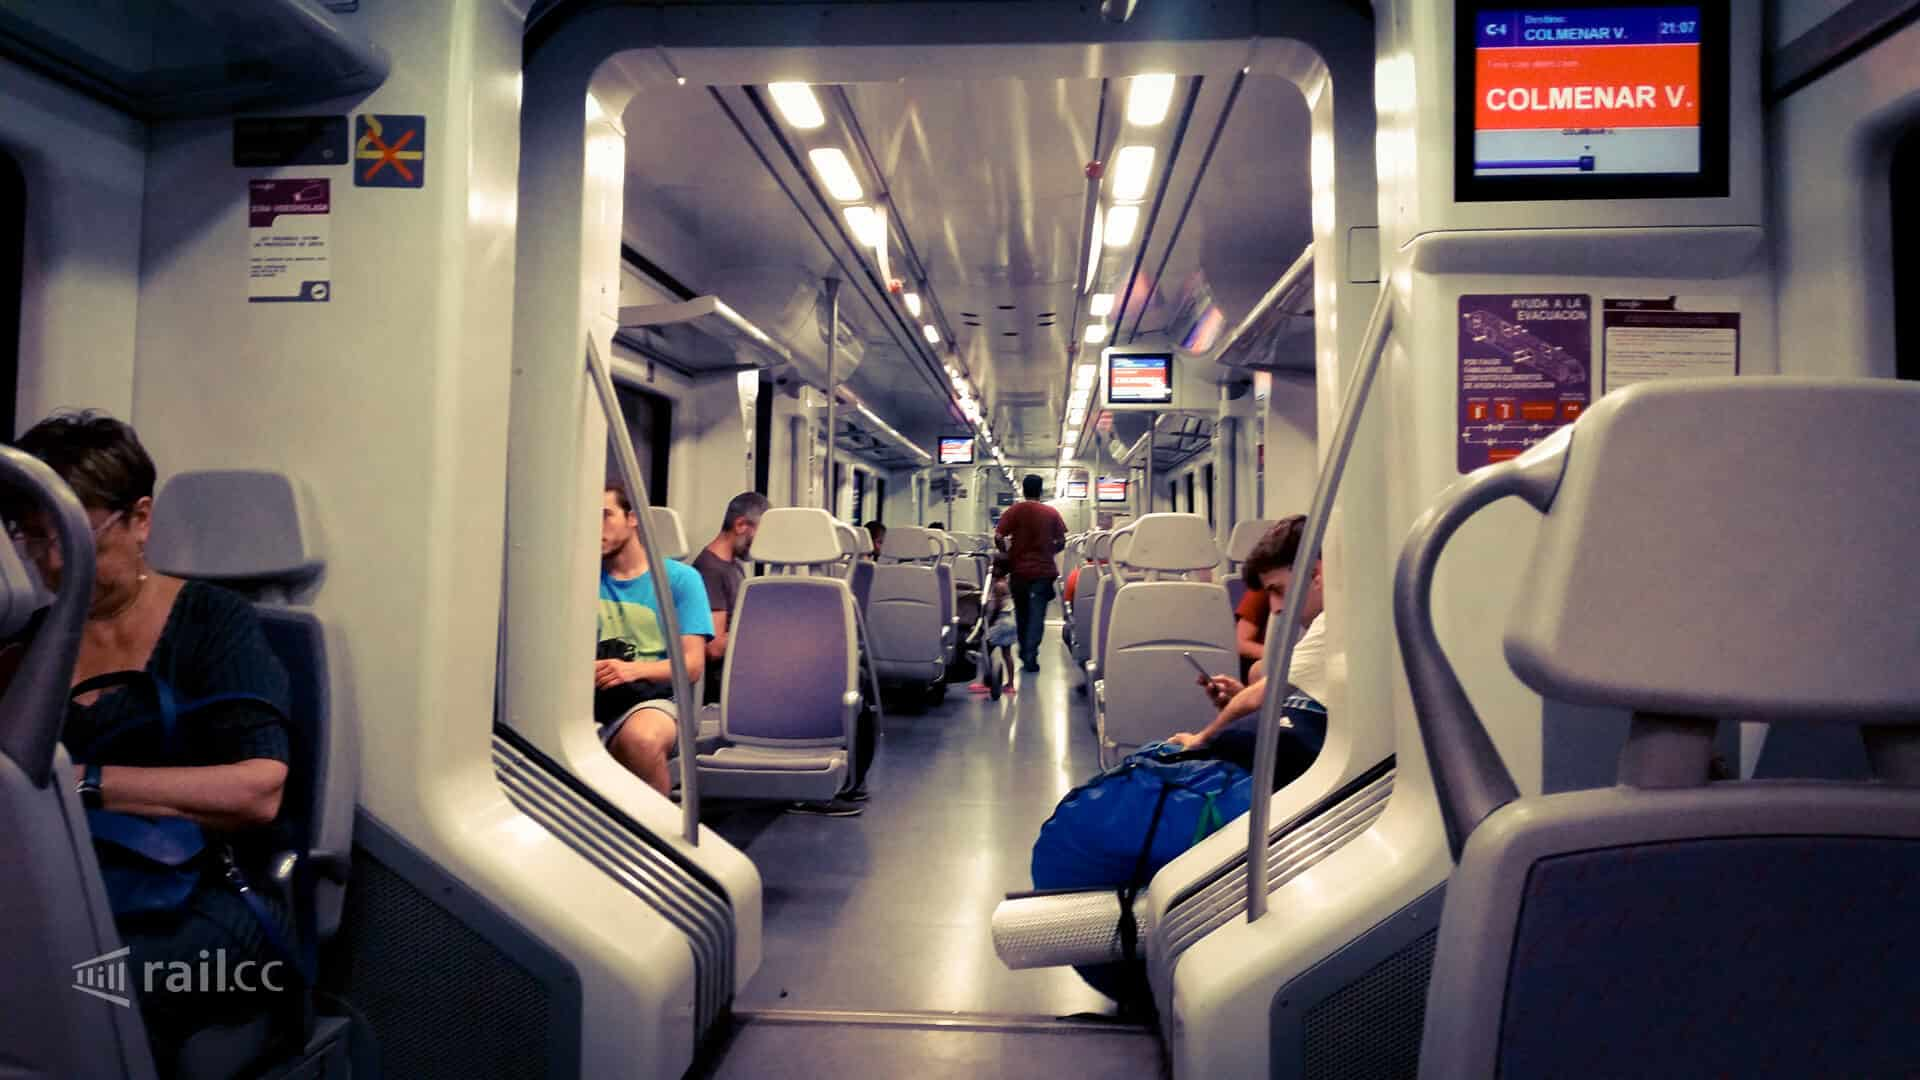 In a Cercanias train to change stations in Madrid.